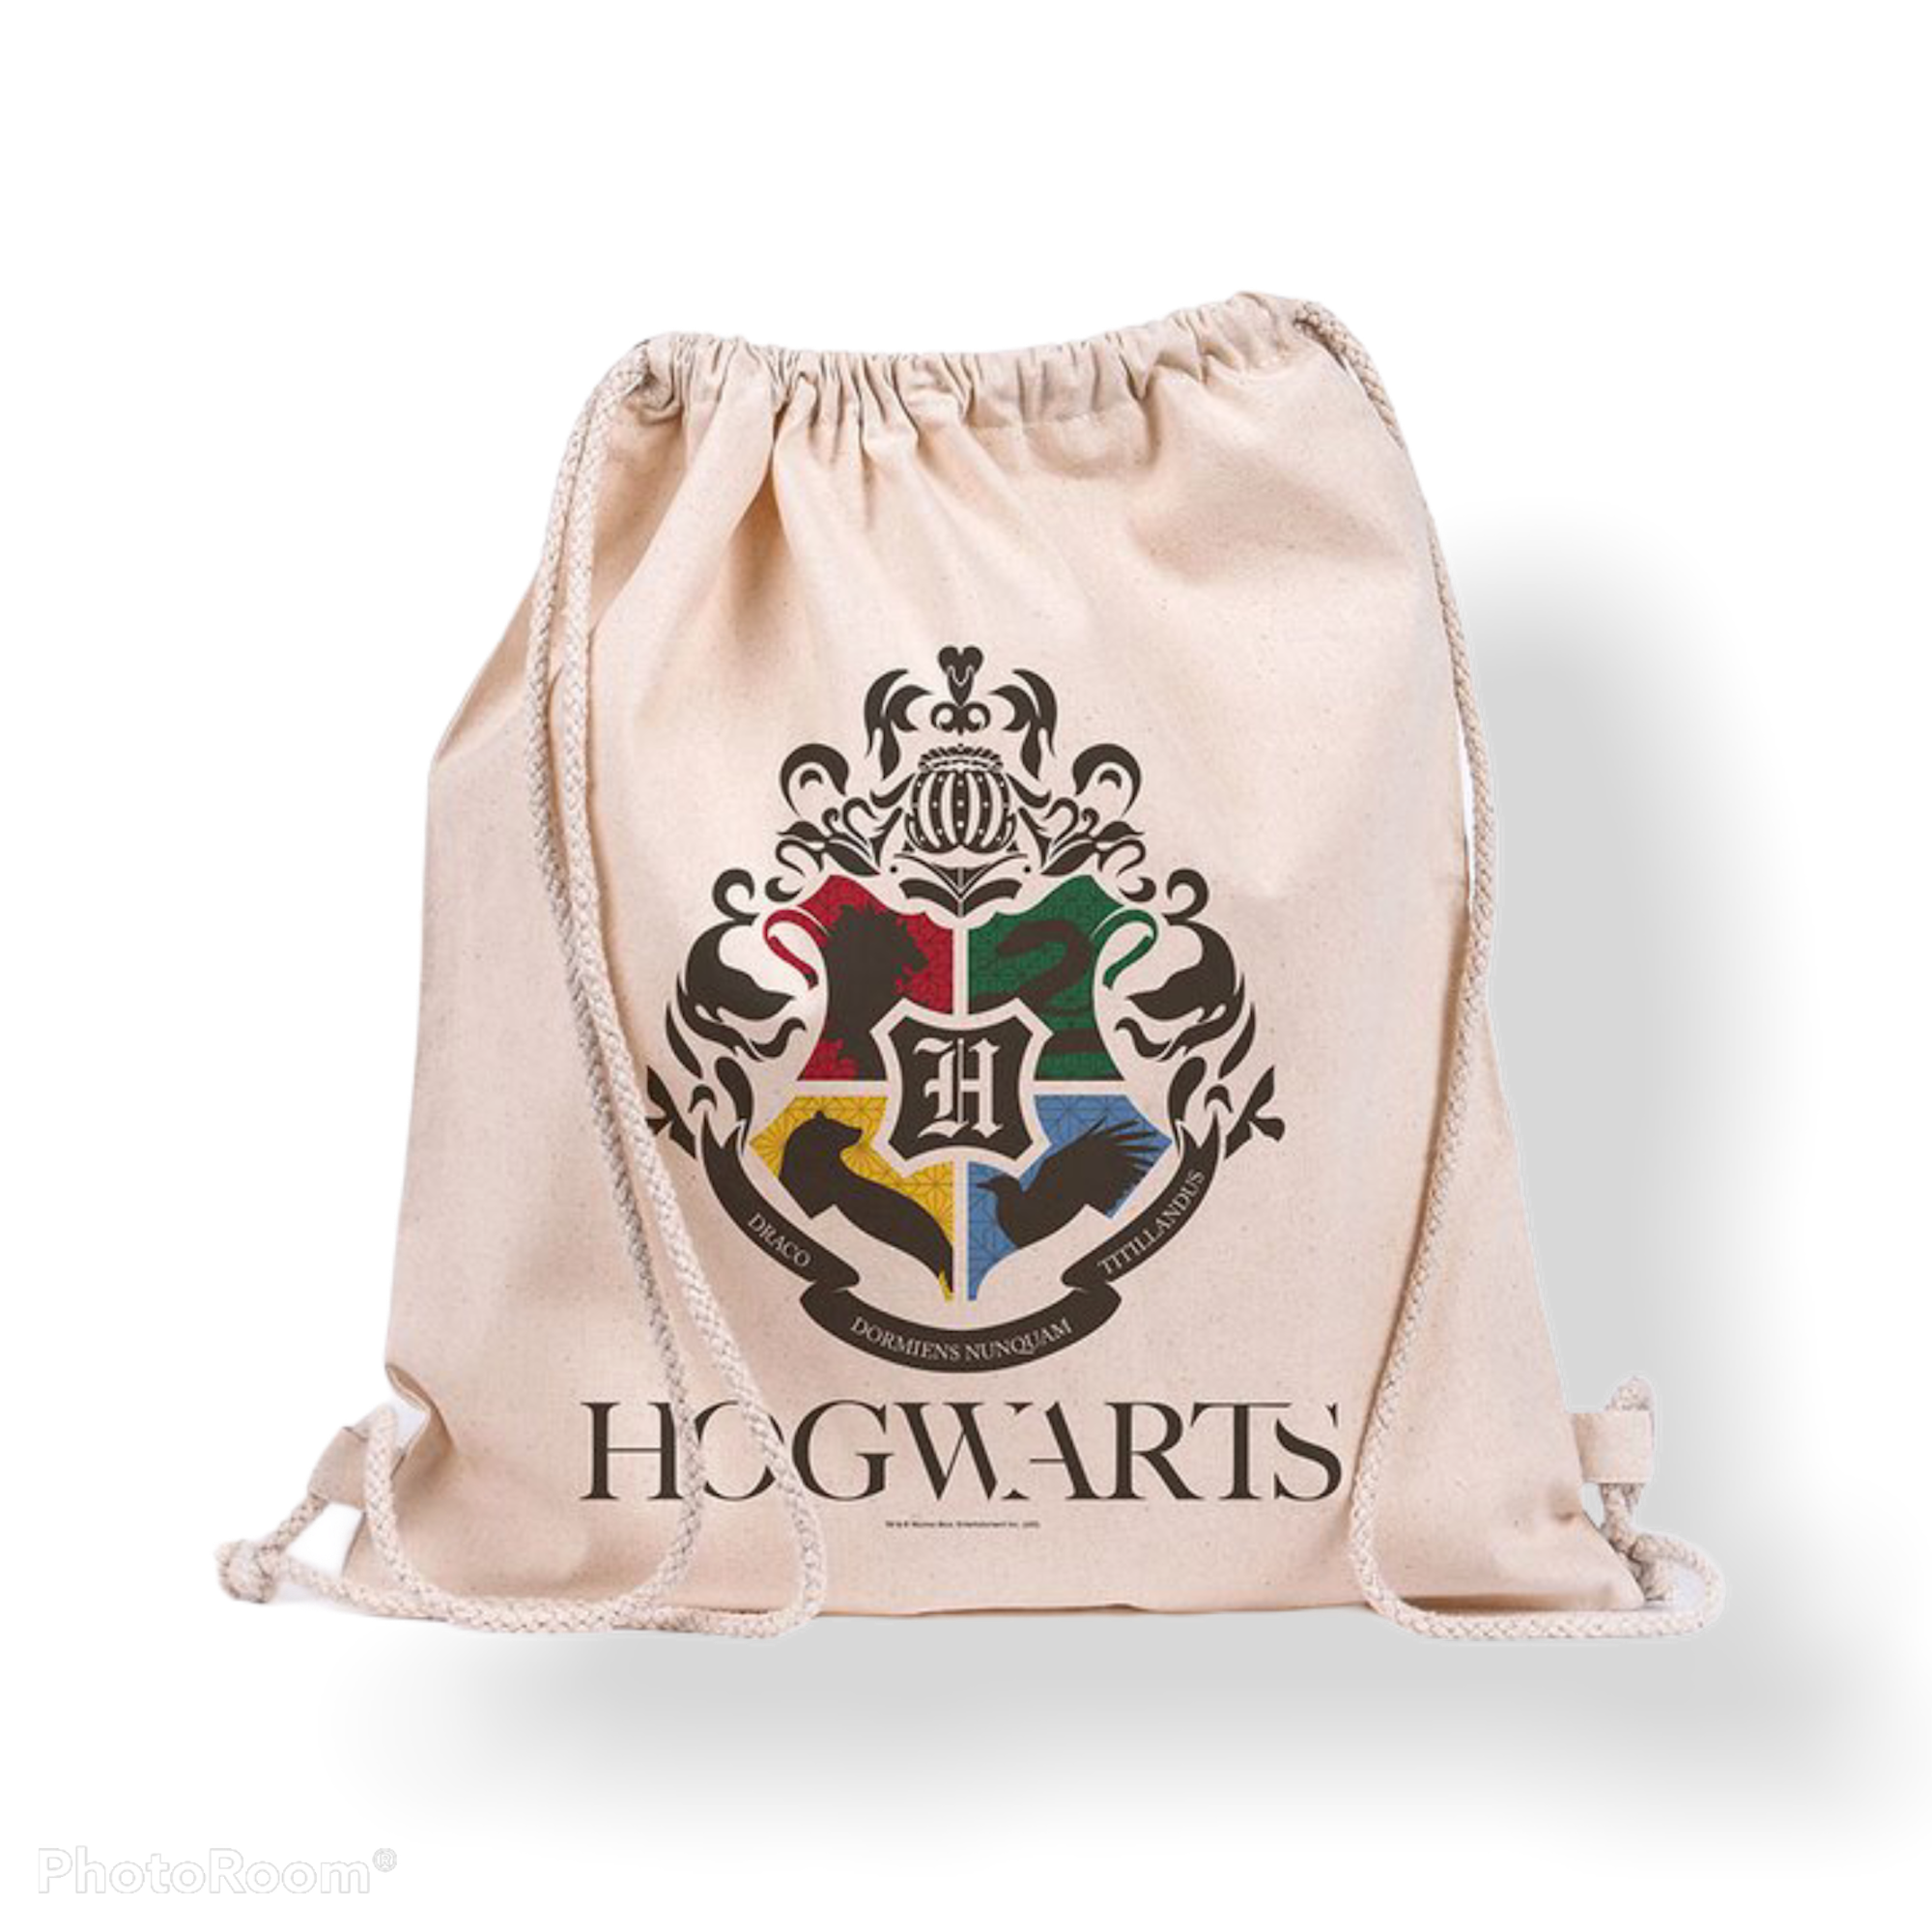 HARRY POTTER - Hogwarts - Sac en toile 100% coton 42x37cm